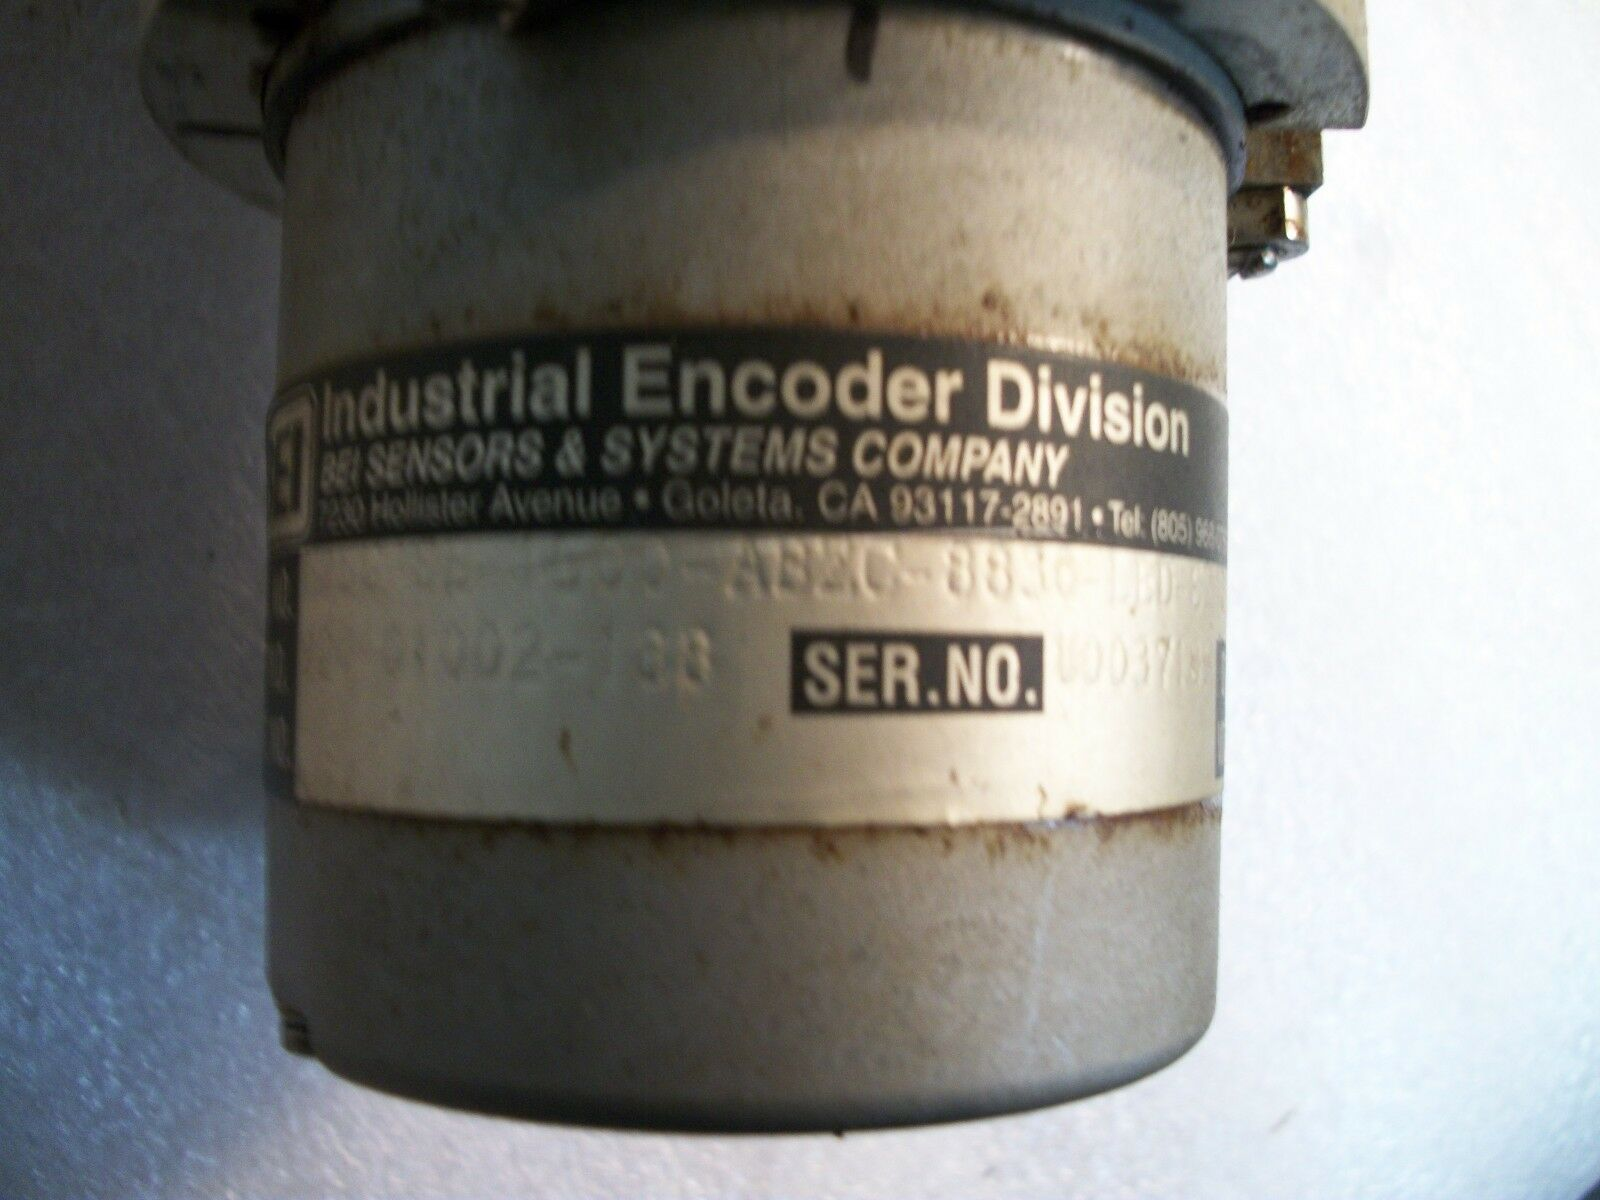 Industrial Drive DC Motor TTE-2042-3054-A-44 Turret Index Motor with BEI Encoder